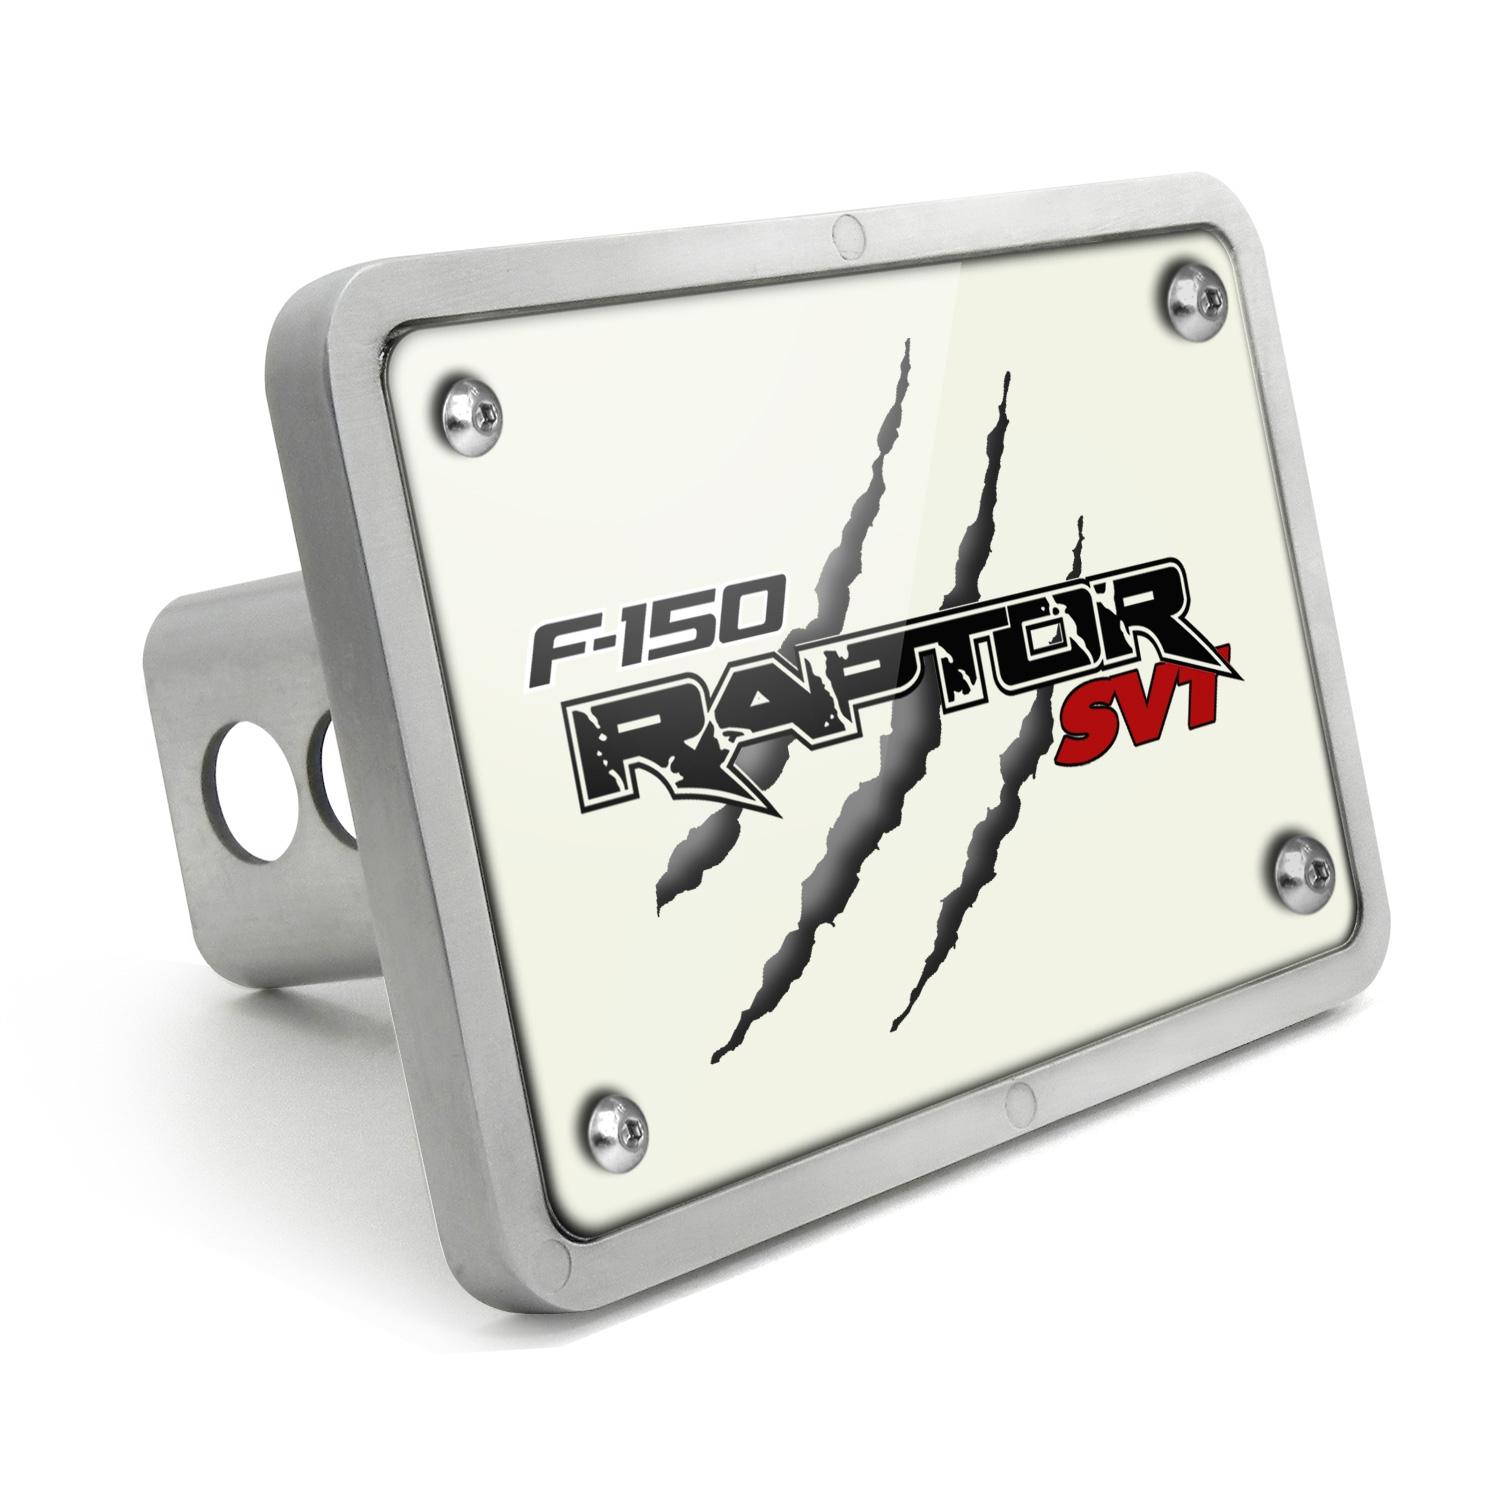 Ford Raptor SVT Claw Marks UV Graphic White Plate Billet Aluminum 2 inch Tow Hitch Cover